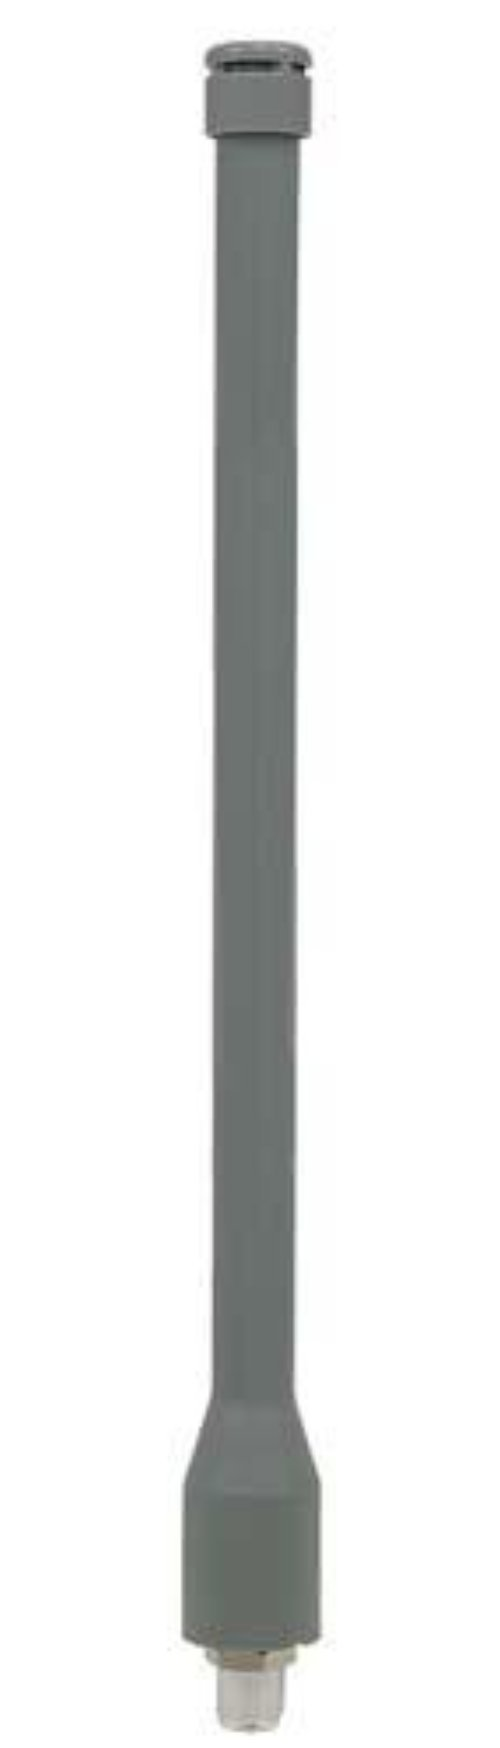 2.4 GHz 6 dBi Omnidirectional Antenna - N-Female HGV-2406U